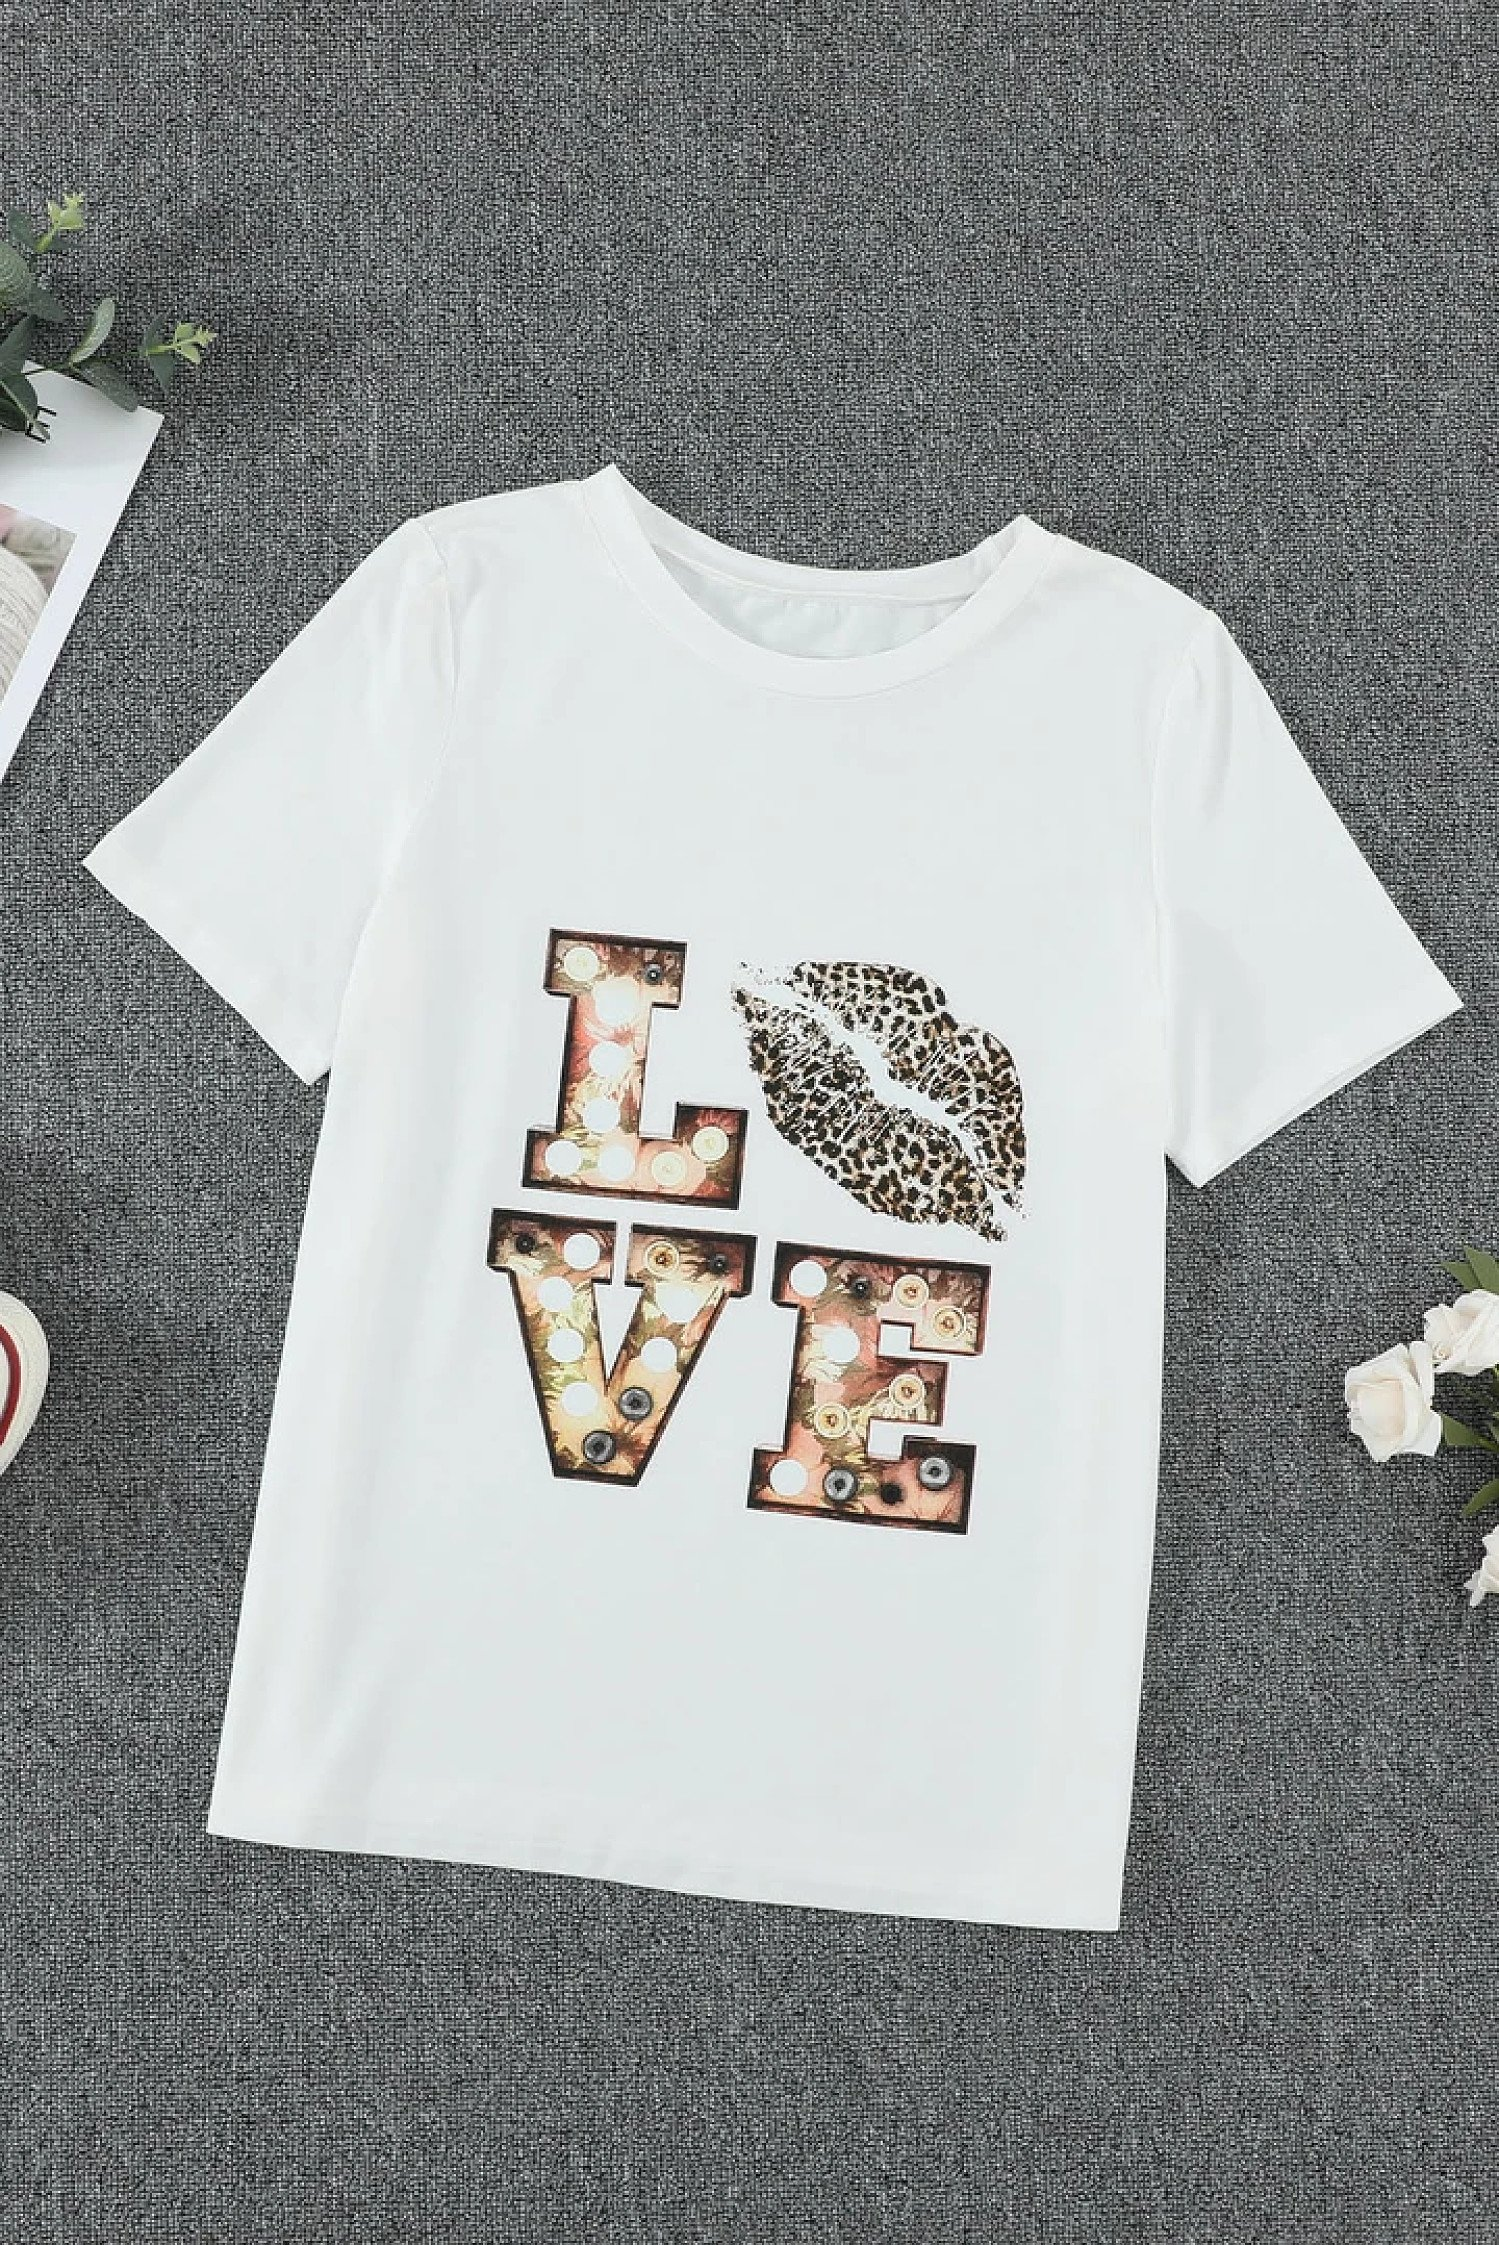 White Crew Neck Cartoon Letter Print Top £14.99 Free Postage